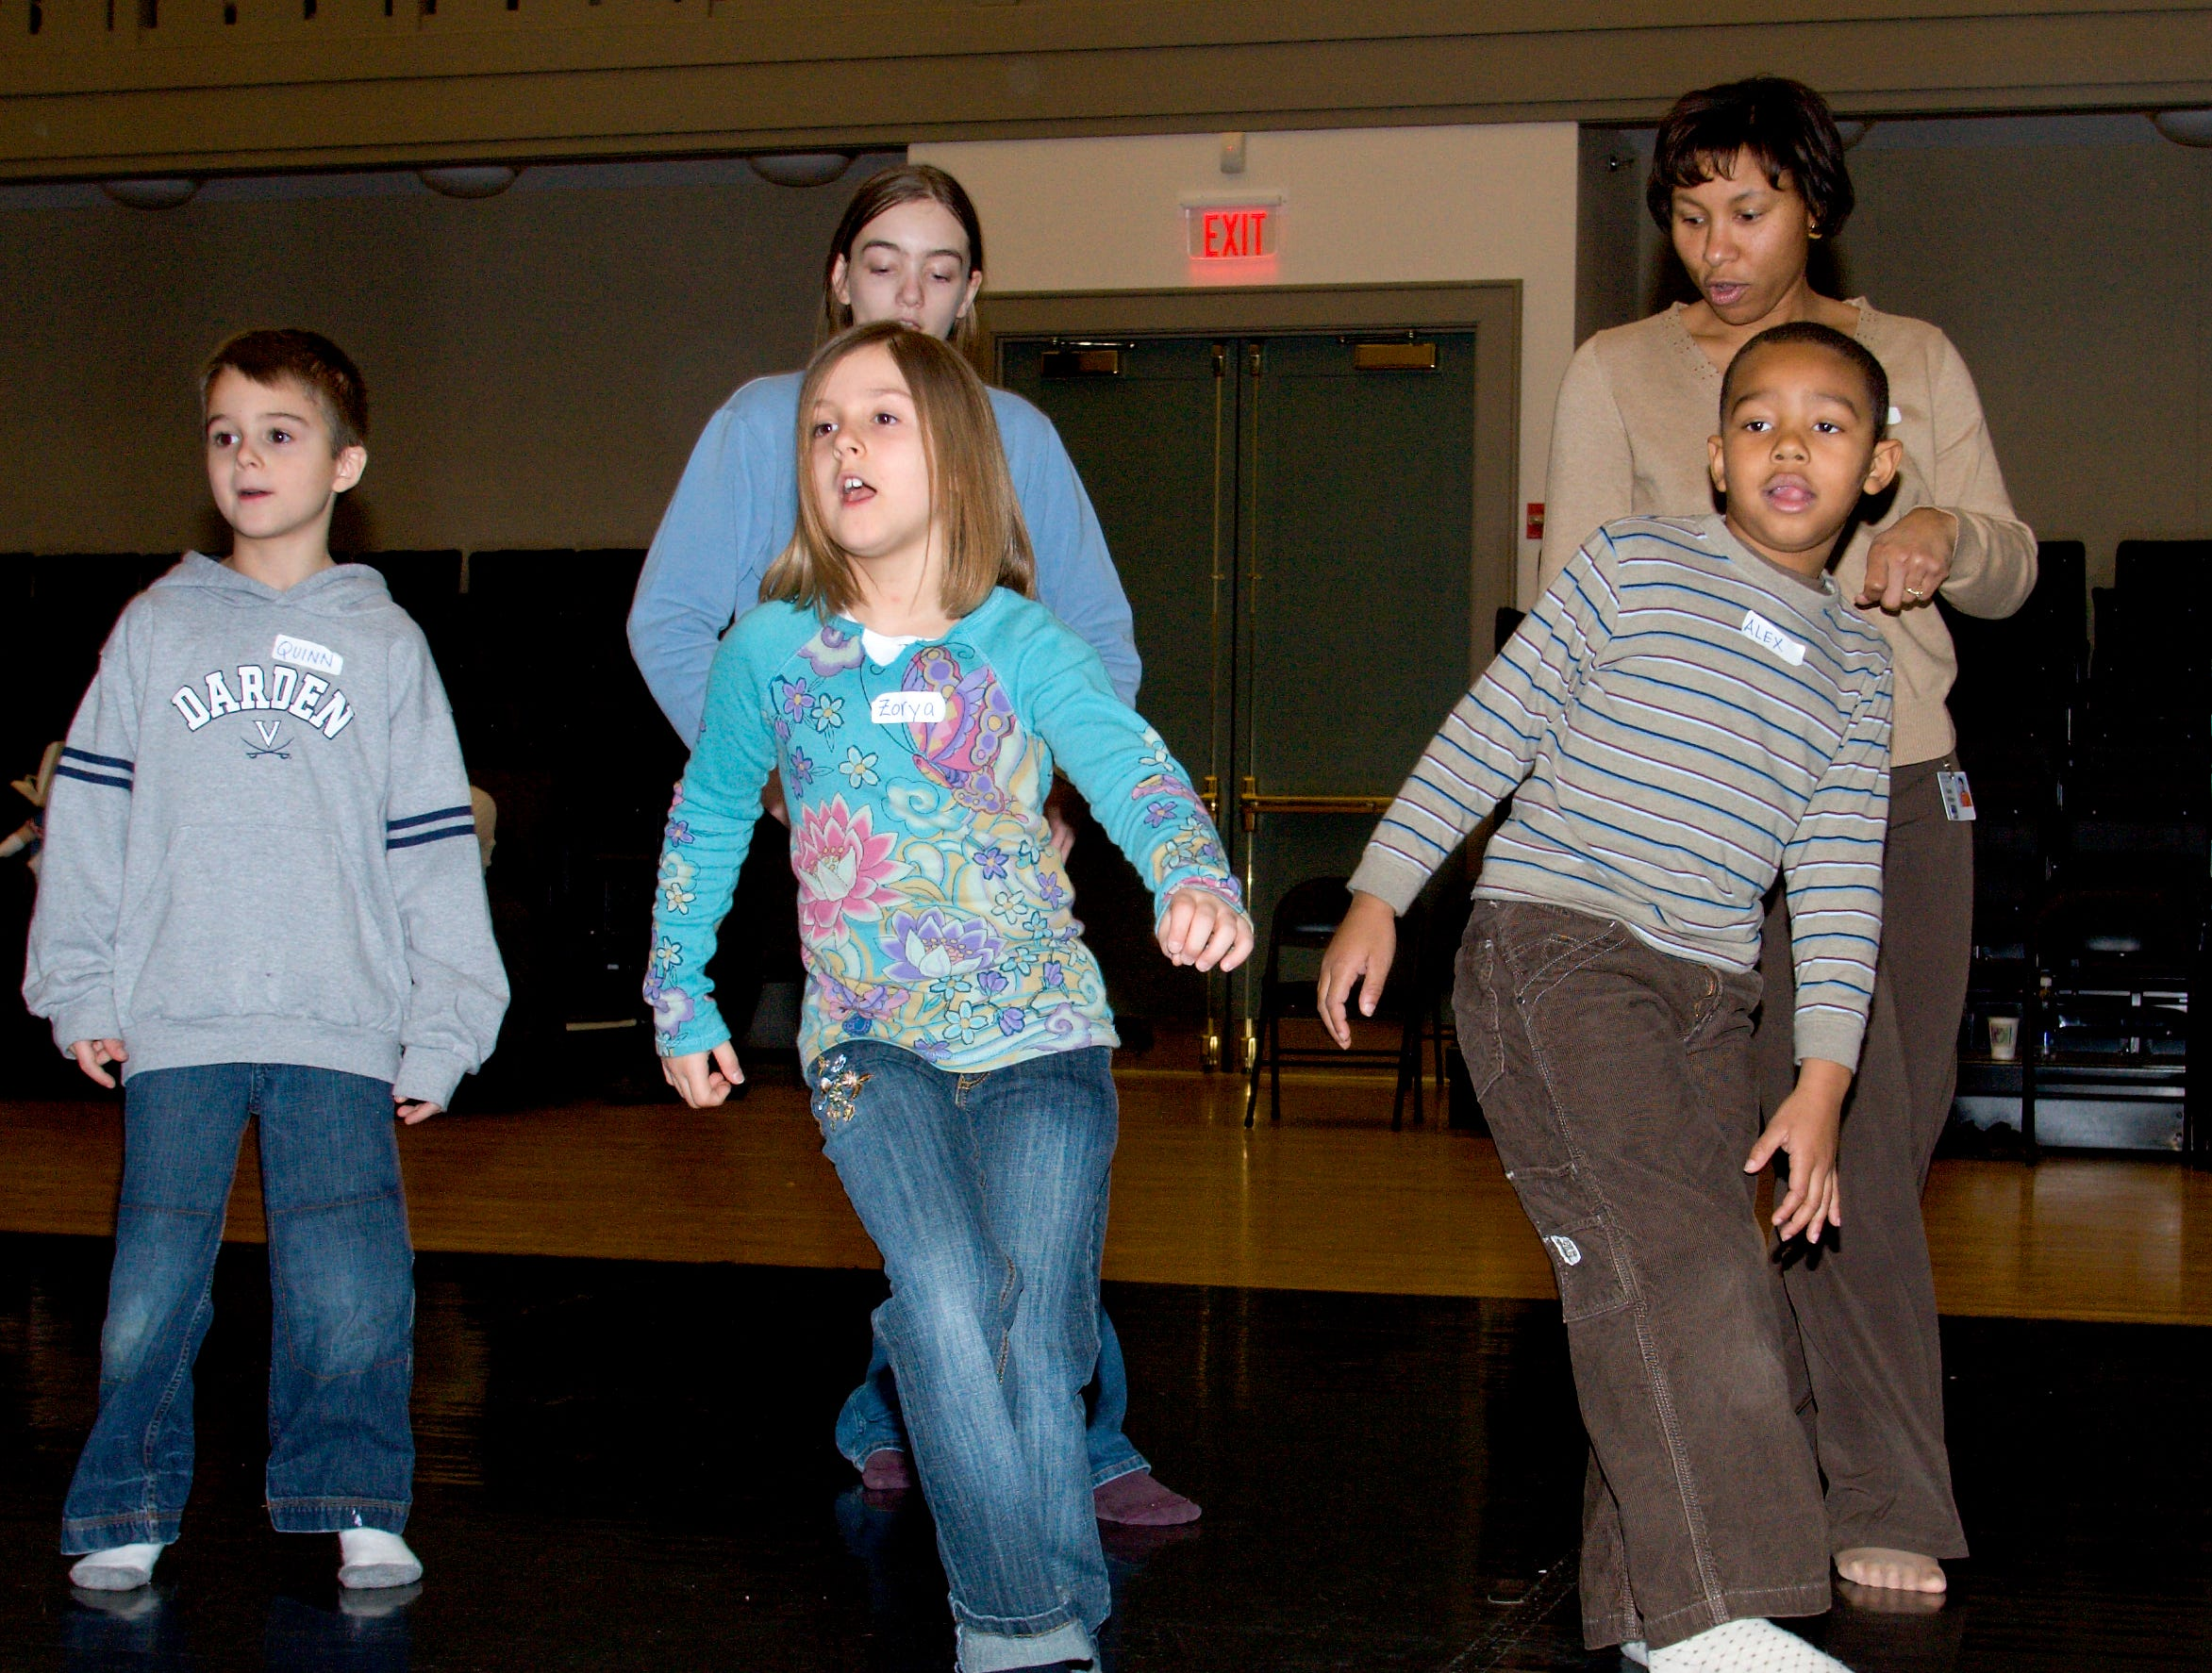 2007: Youngsters, from left, Quinn Nicholson, 7, of Painted Post, Zorya Webster, 7, of Corning, and Alex Derry, 6, of Horseheads, practice  dance routines with help from volunteers Gabriella Caruso, 11, of Corning, and Robin Walton of Painted Post during Martin Luther King Jr. Day  activies at 171 Cedar Arts Center Monday afternoon.